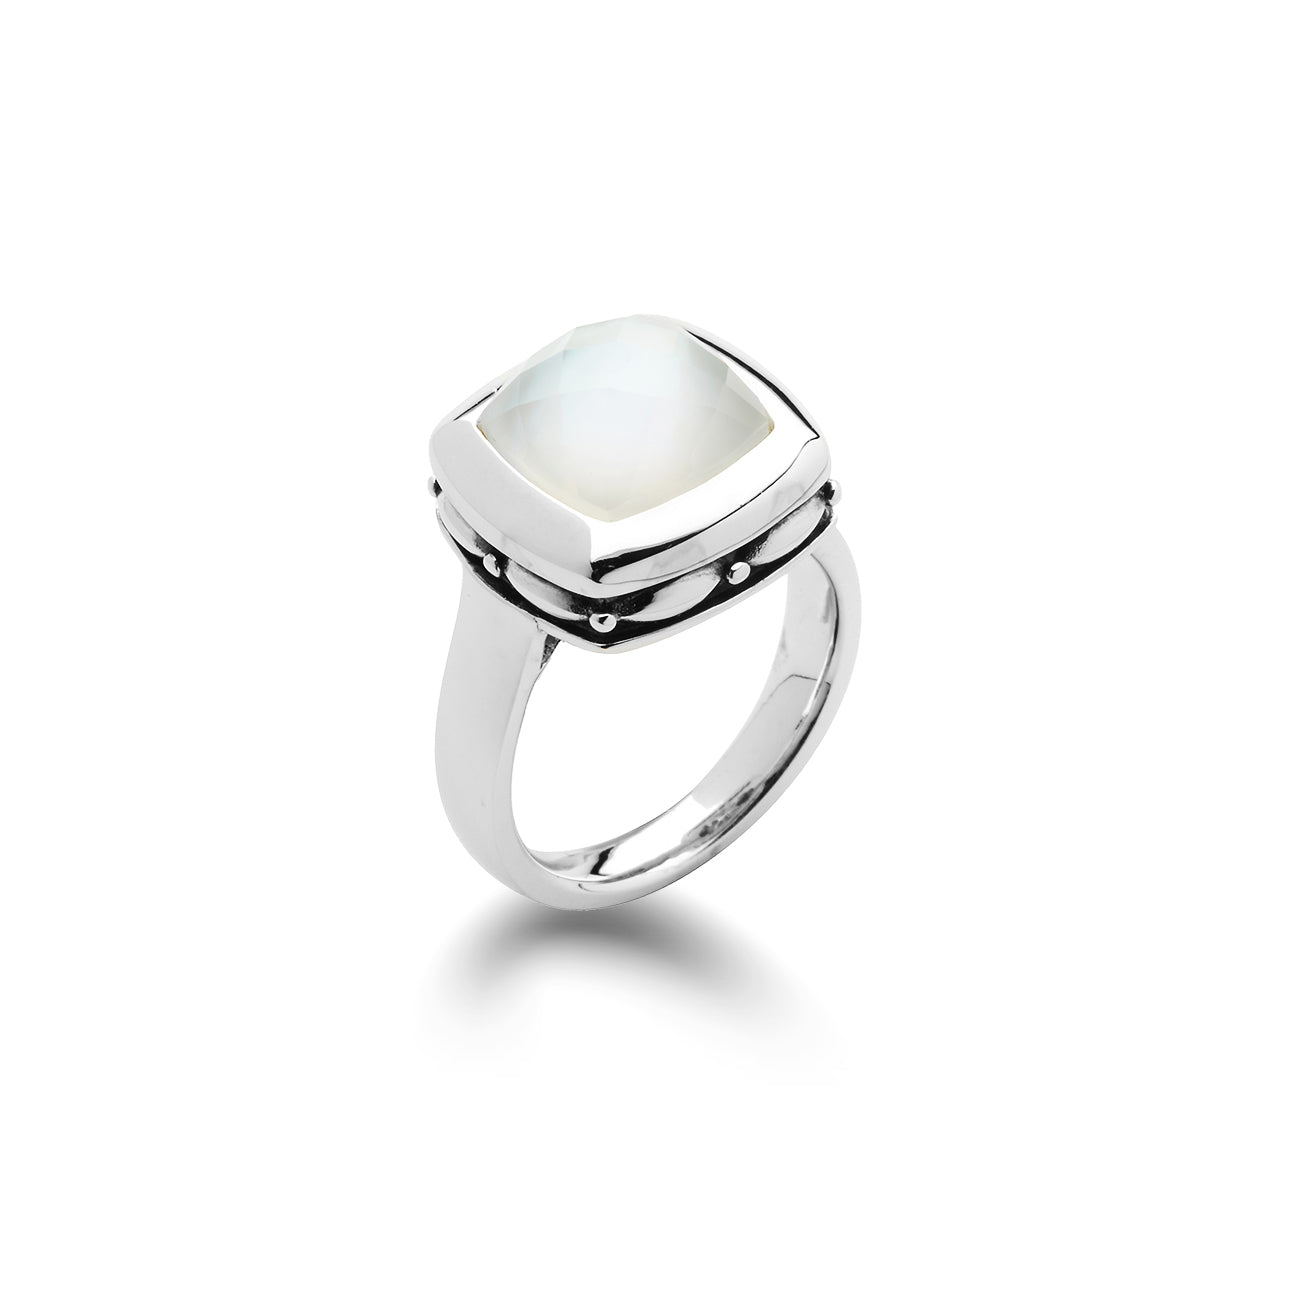 Mother of Pearl and White Quartz Ring, Sterling Silver